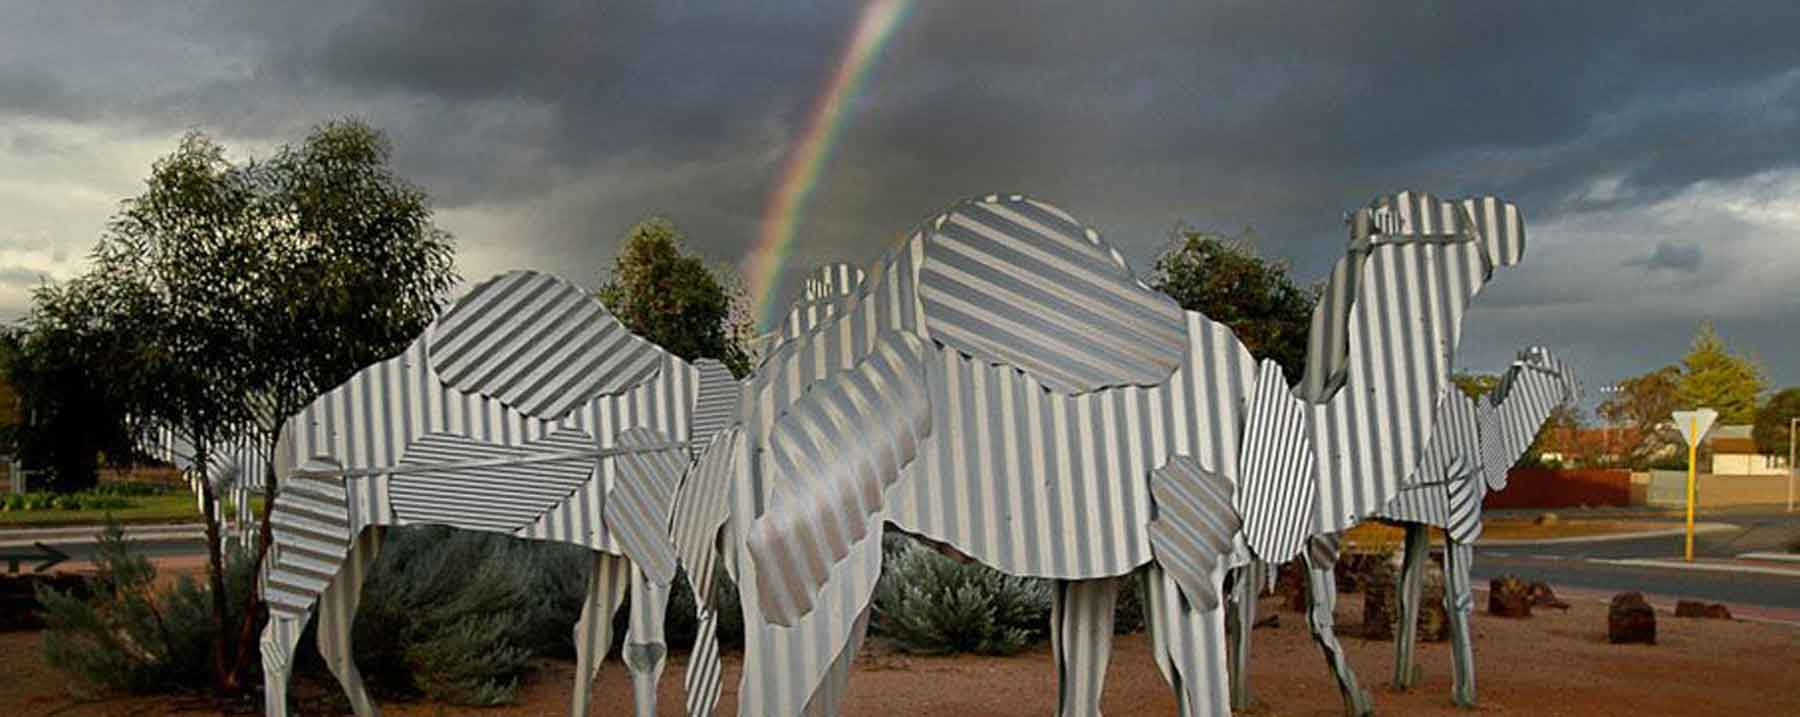 Corrugated Iron Camels